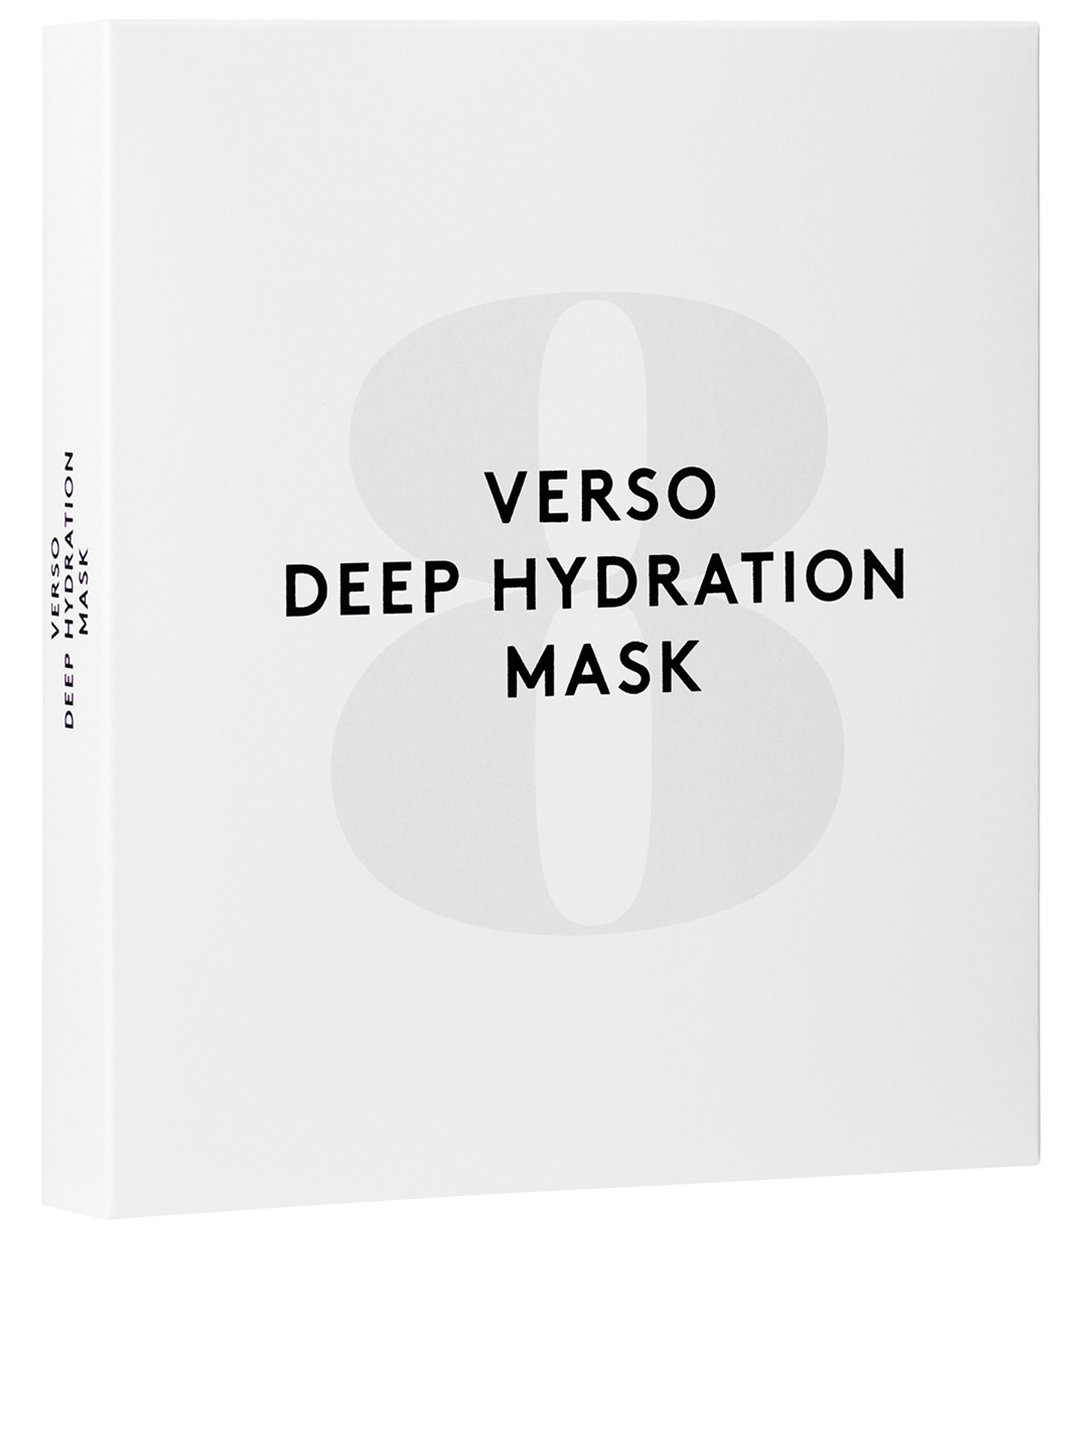 VERSO Deep Hydration Mask Beauty